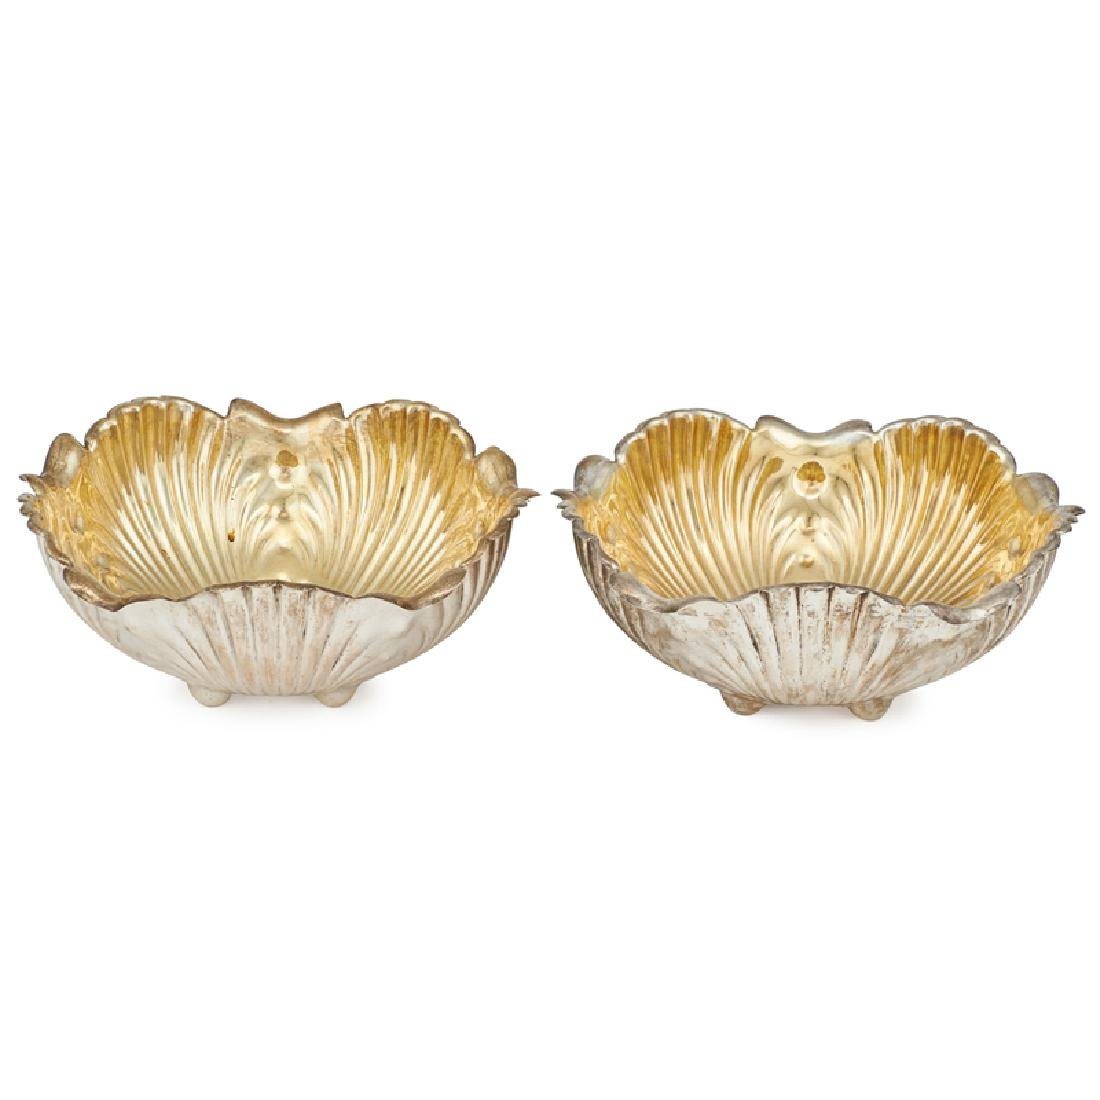 WHITING CABBAGE FORM STERLING SILVER SALAD BOWLS